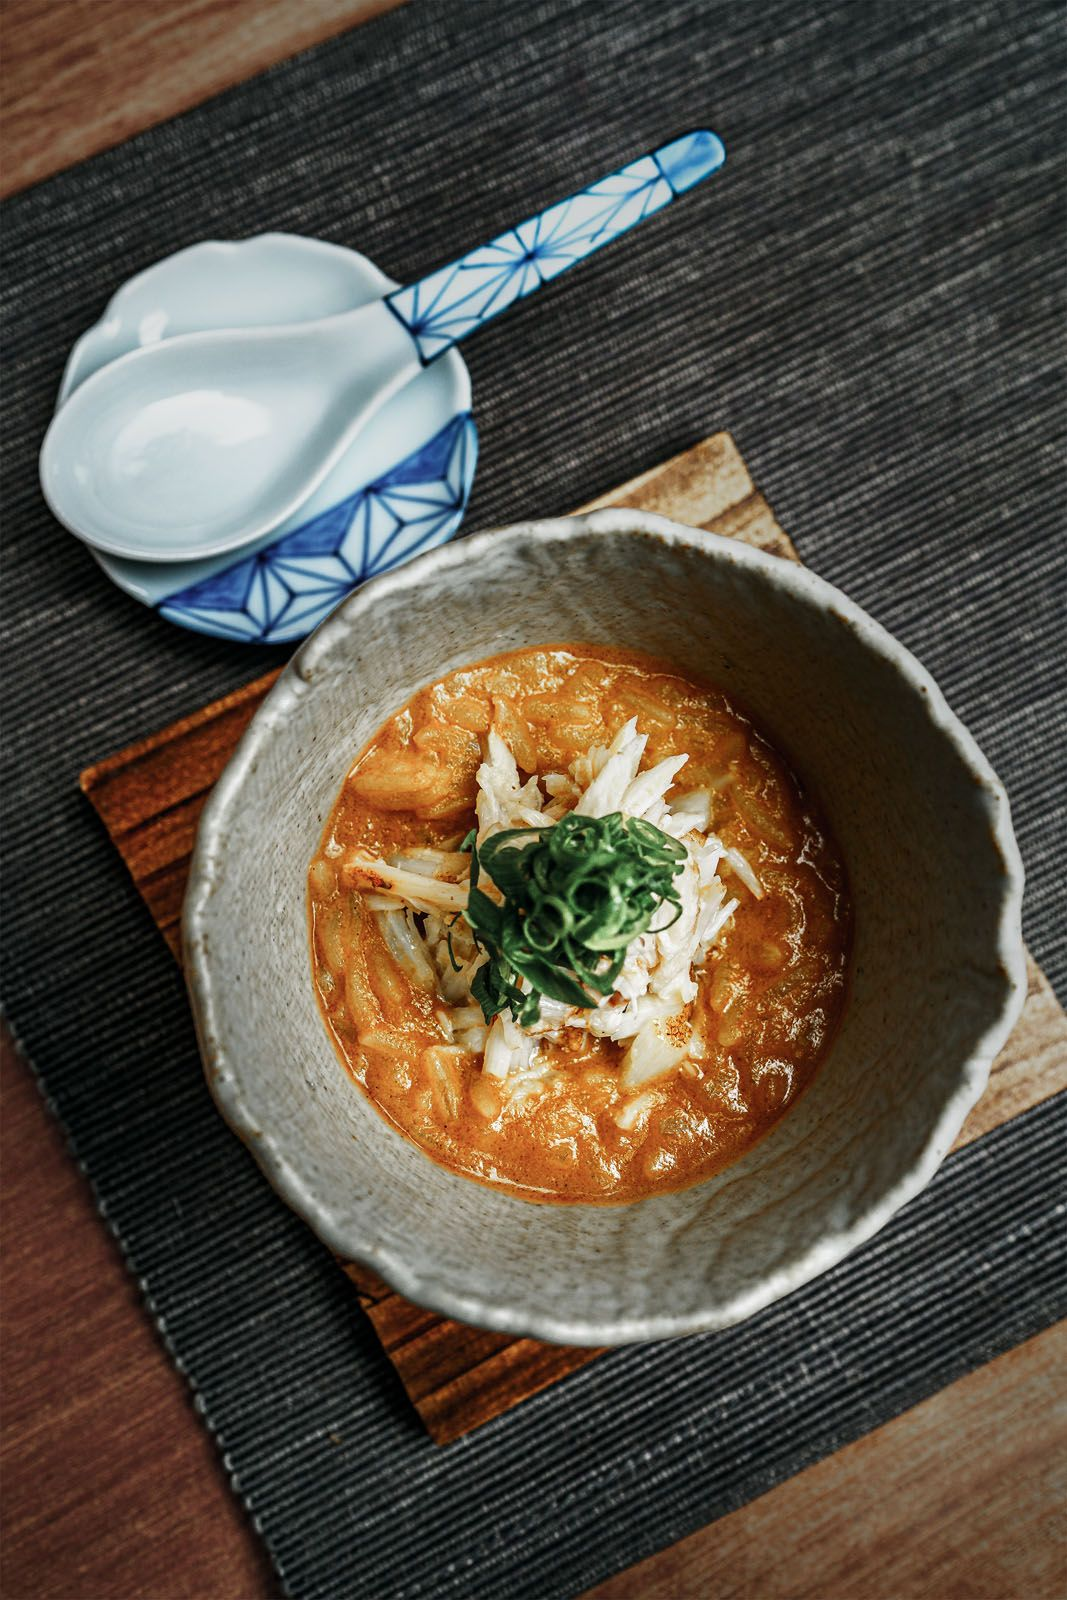 Inspired by a local classic and Japanese rice soup, Gan Ming Kiat's crab porridge features Sri Lankan mud crab meat with his take on the chilli crab sauce made from scratch